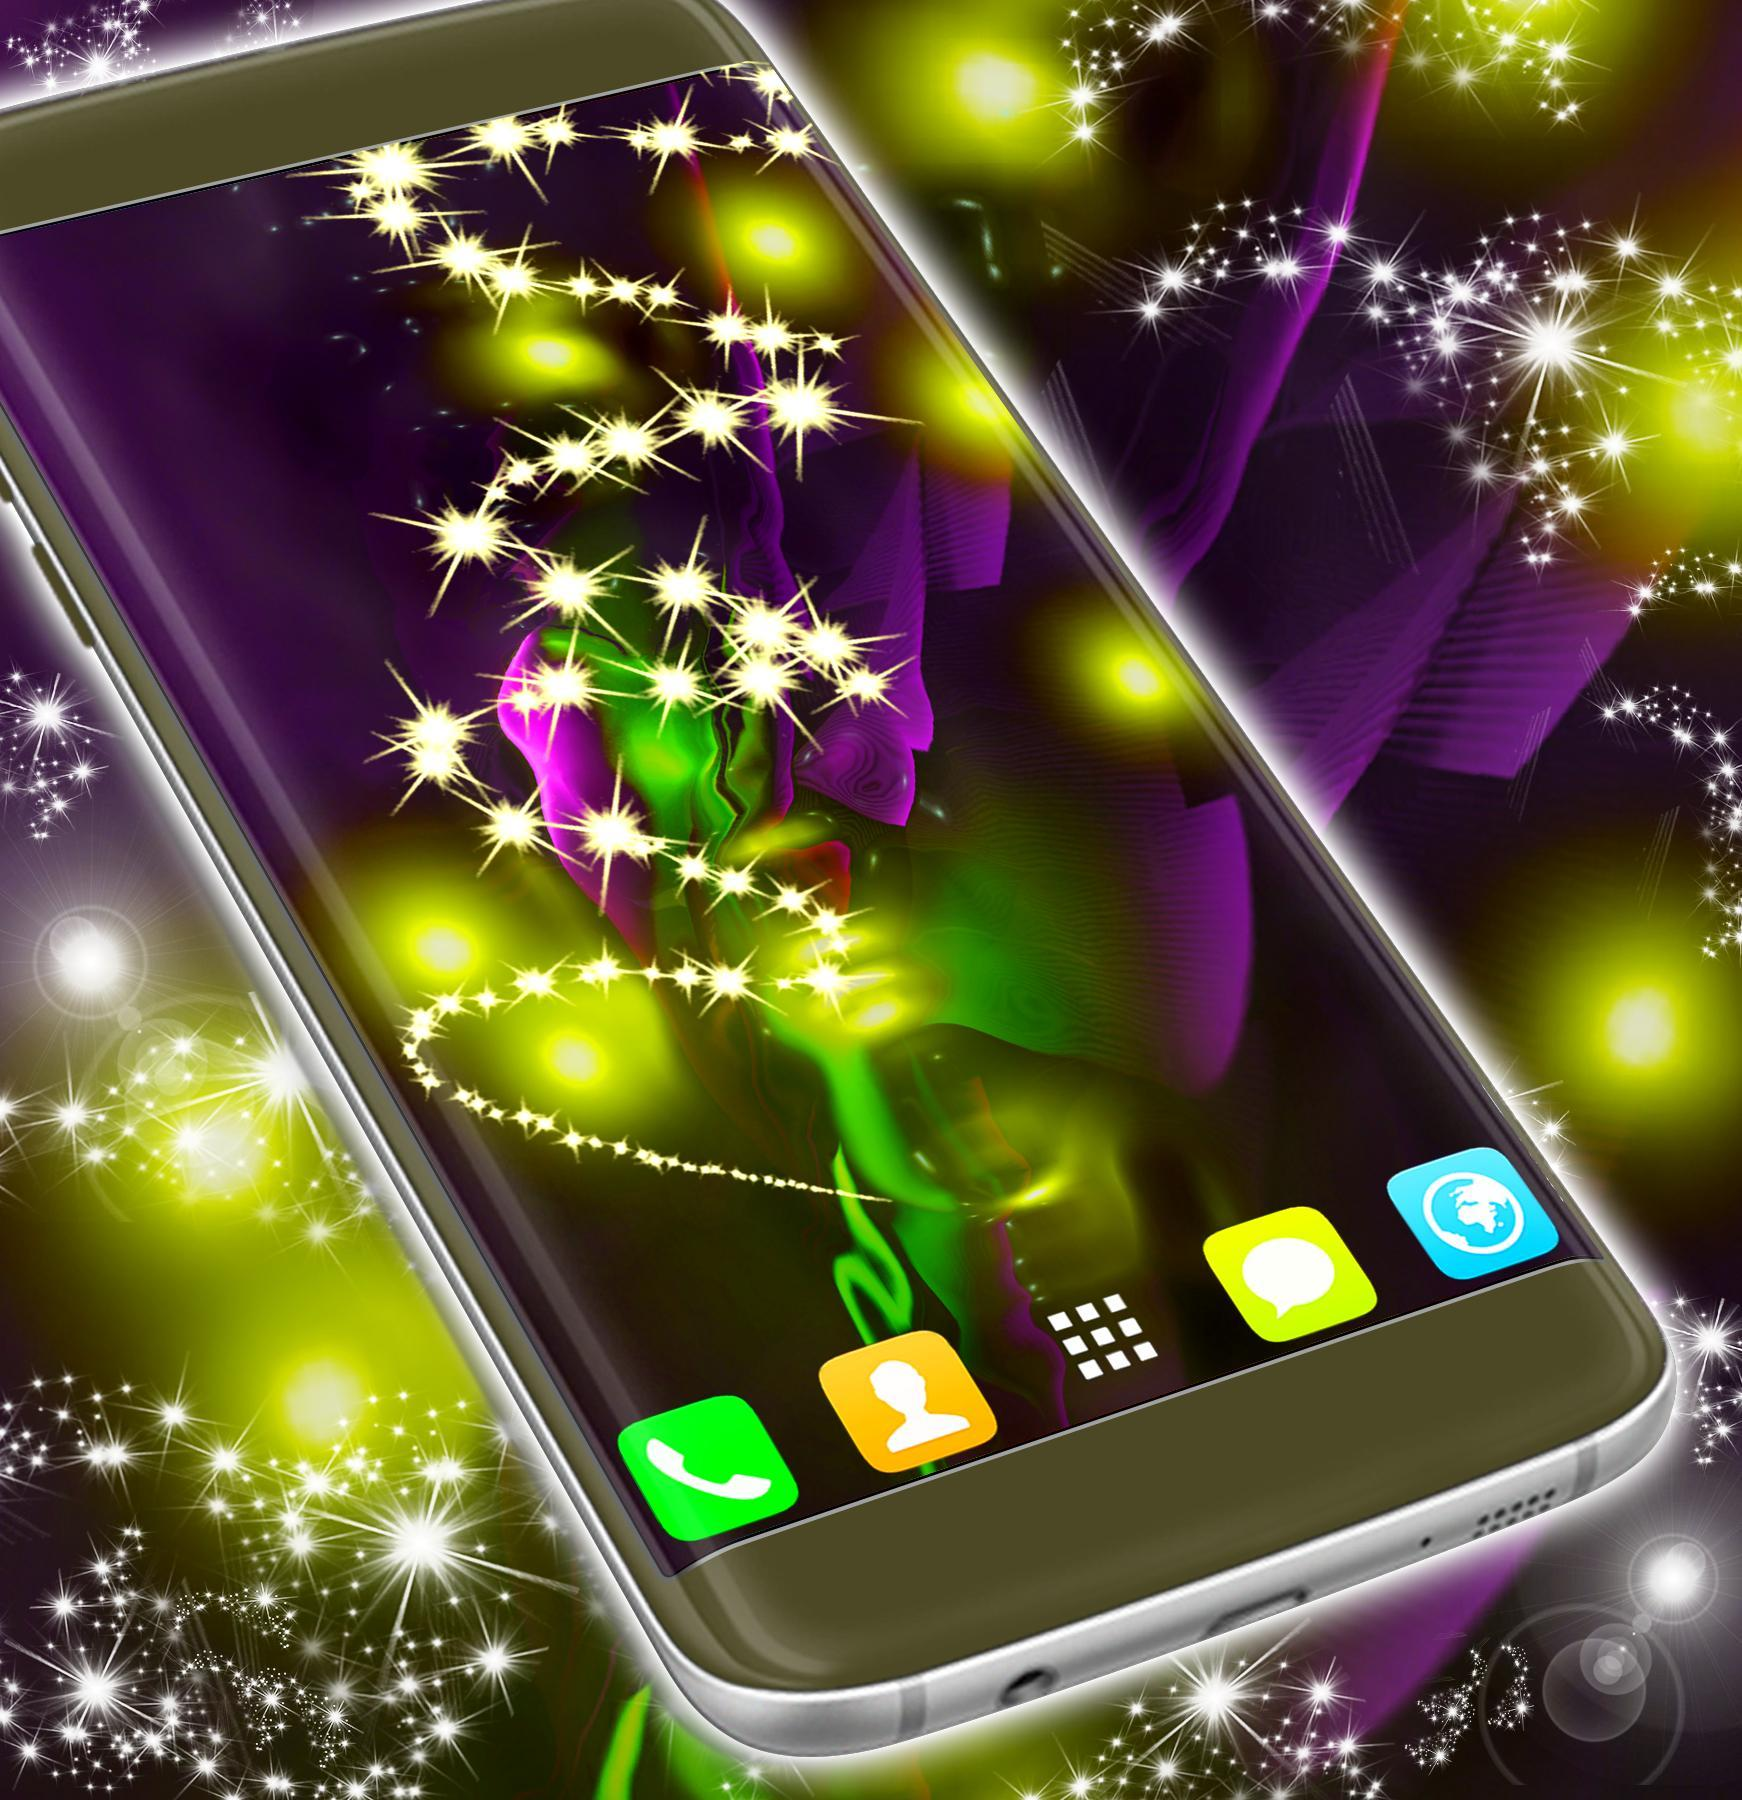 Live 3d Wallpaper For Samsung Galaxy S6 Edge For Android Apk Download